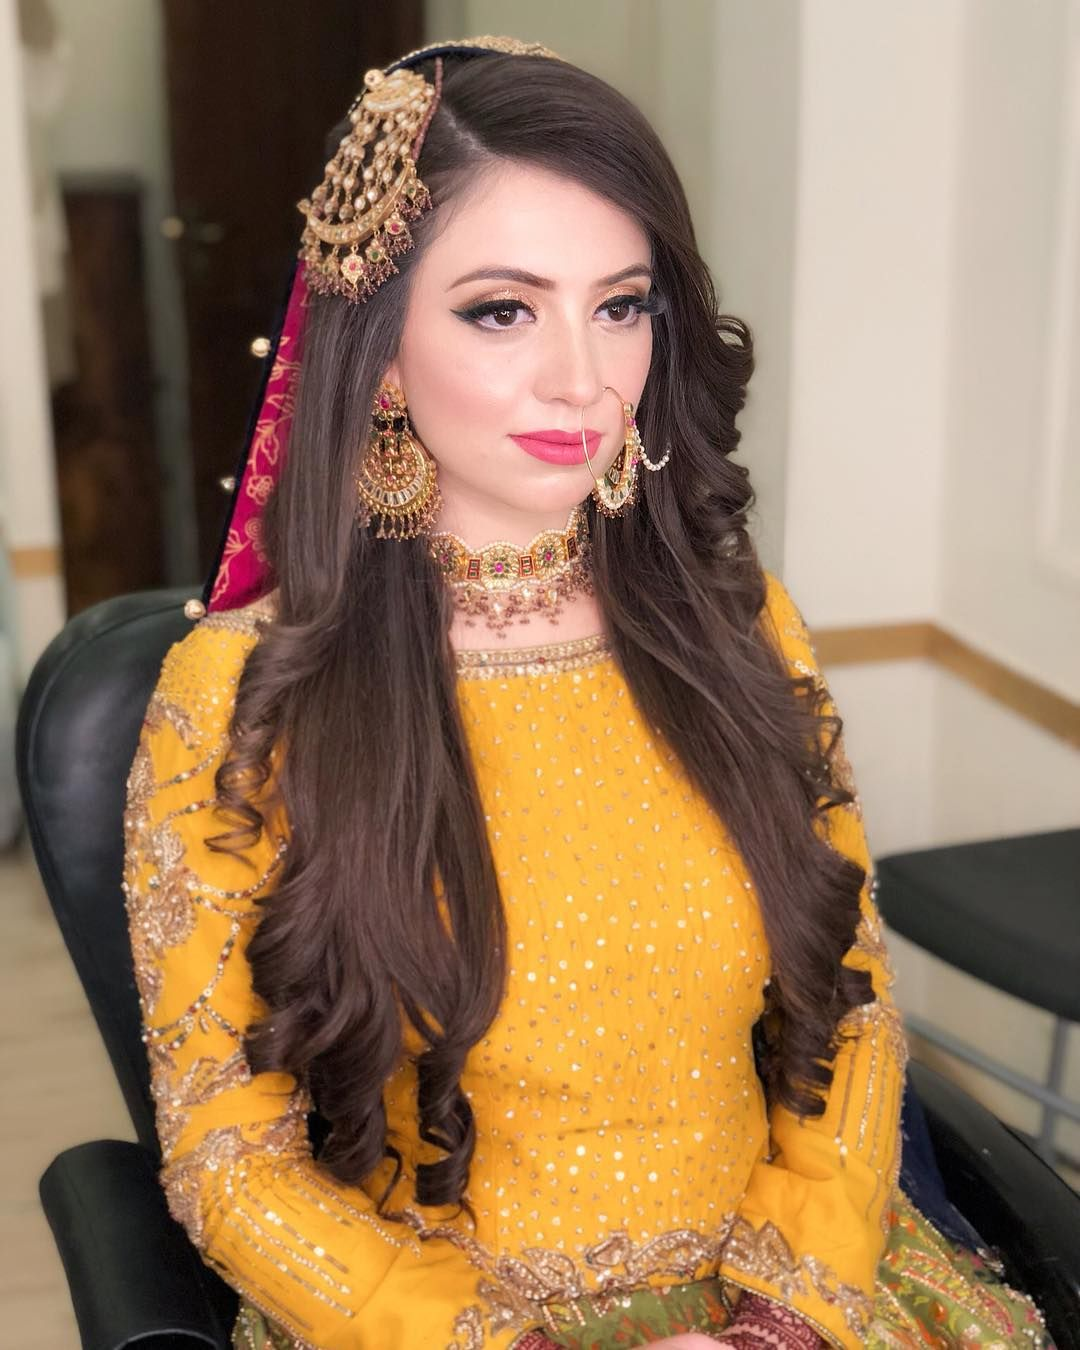 Hairstyles Pakistani Waleema: Pin By Cute Mute On Bridal Makeover In 2019